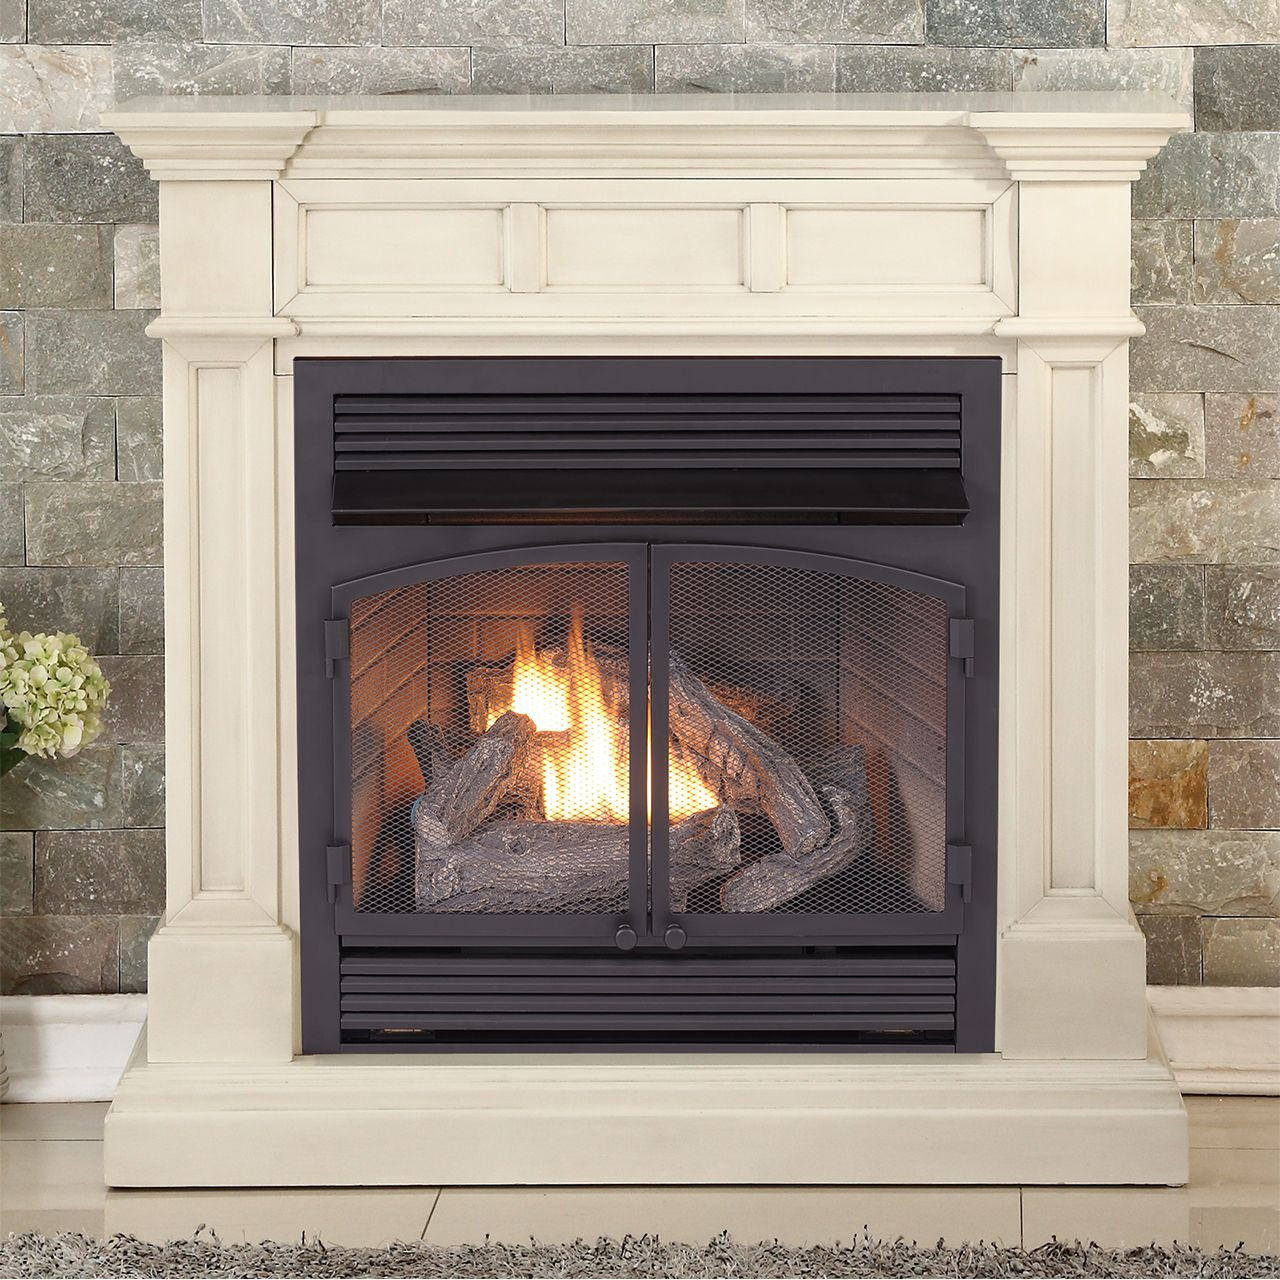 Fireplace Propane Heater Gas Electric Fireplaces Factory Buys Direct